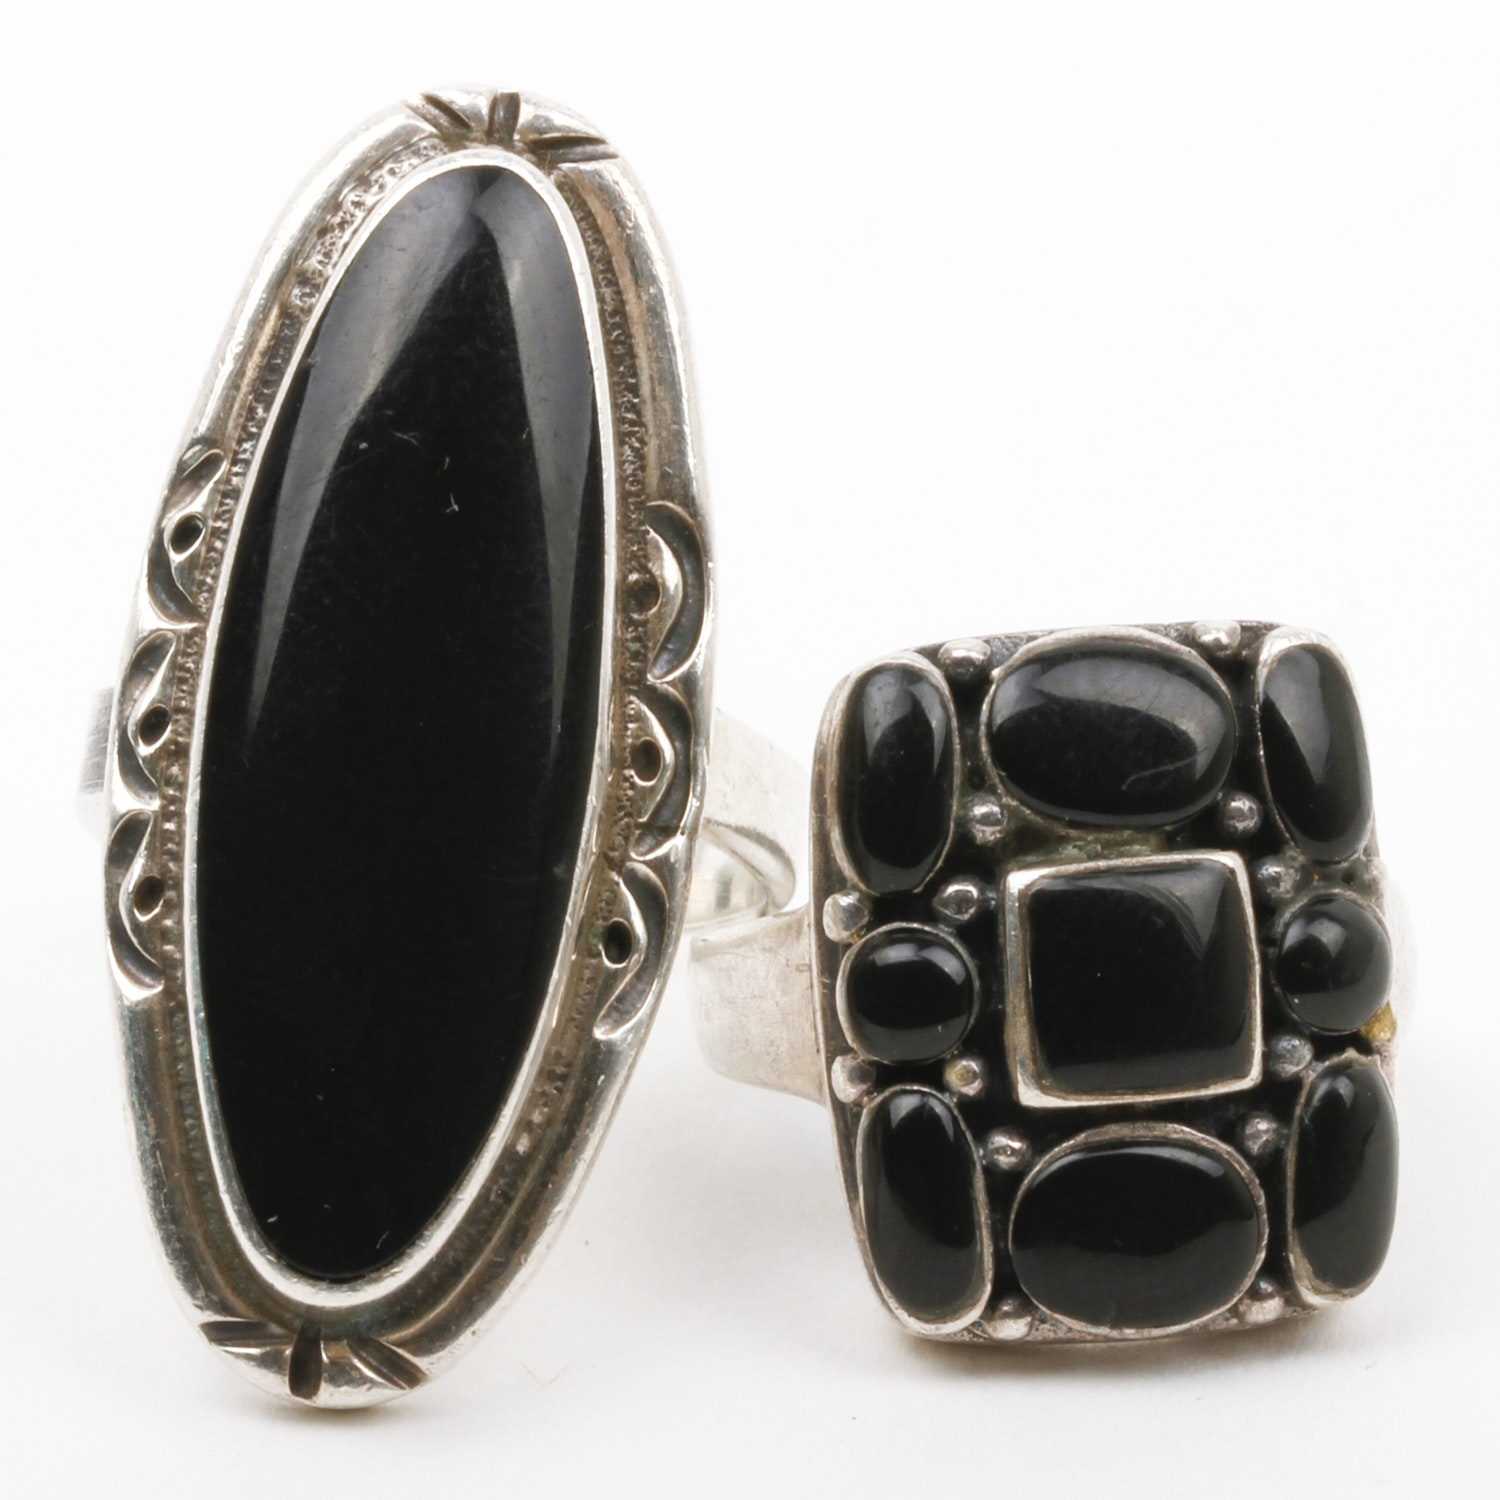 Pair of Sterling Silver and Onyx Statement Rings